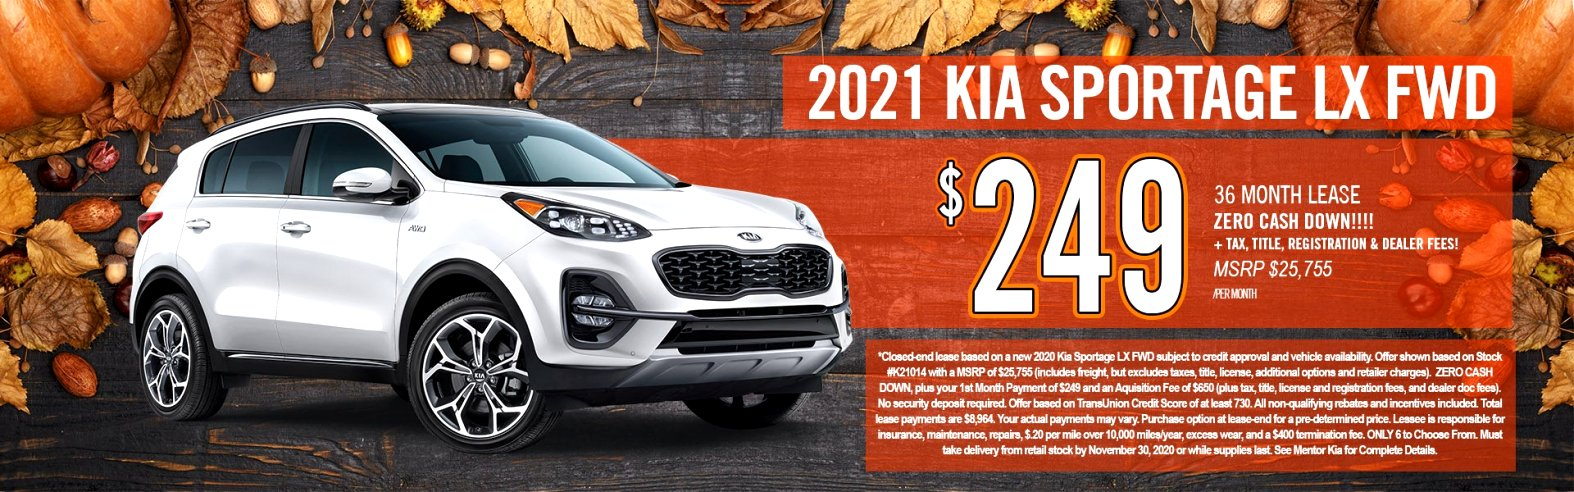 kia buy one get one 2020 Reviews